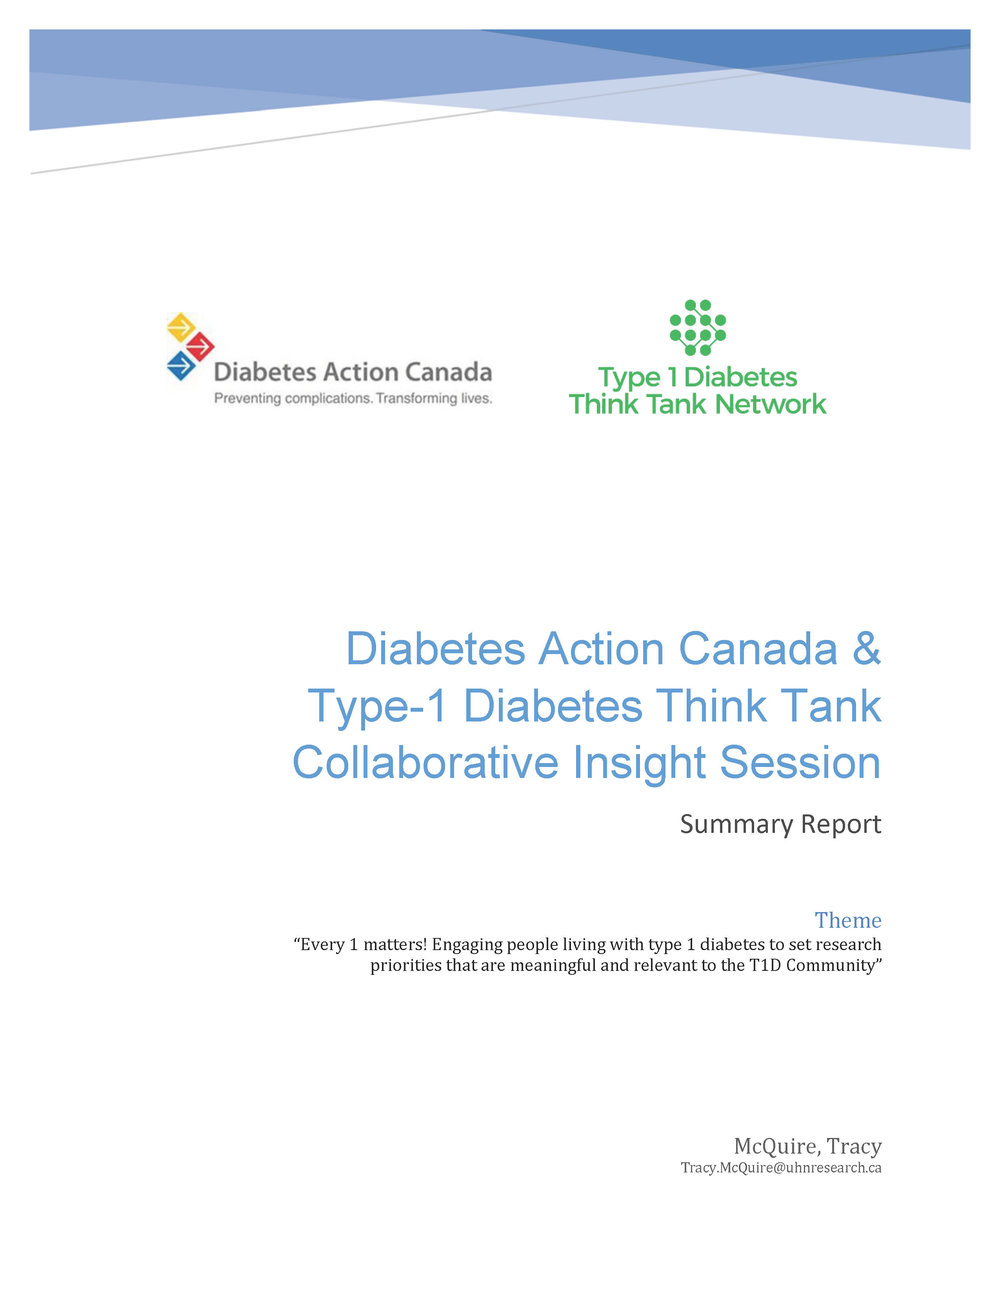 T1D Think Tank and Diabetes Action Canada Insight Session Report FINAL_Page_1.jpg